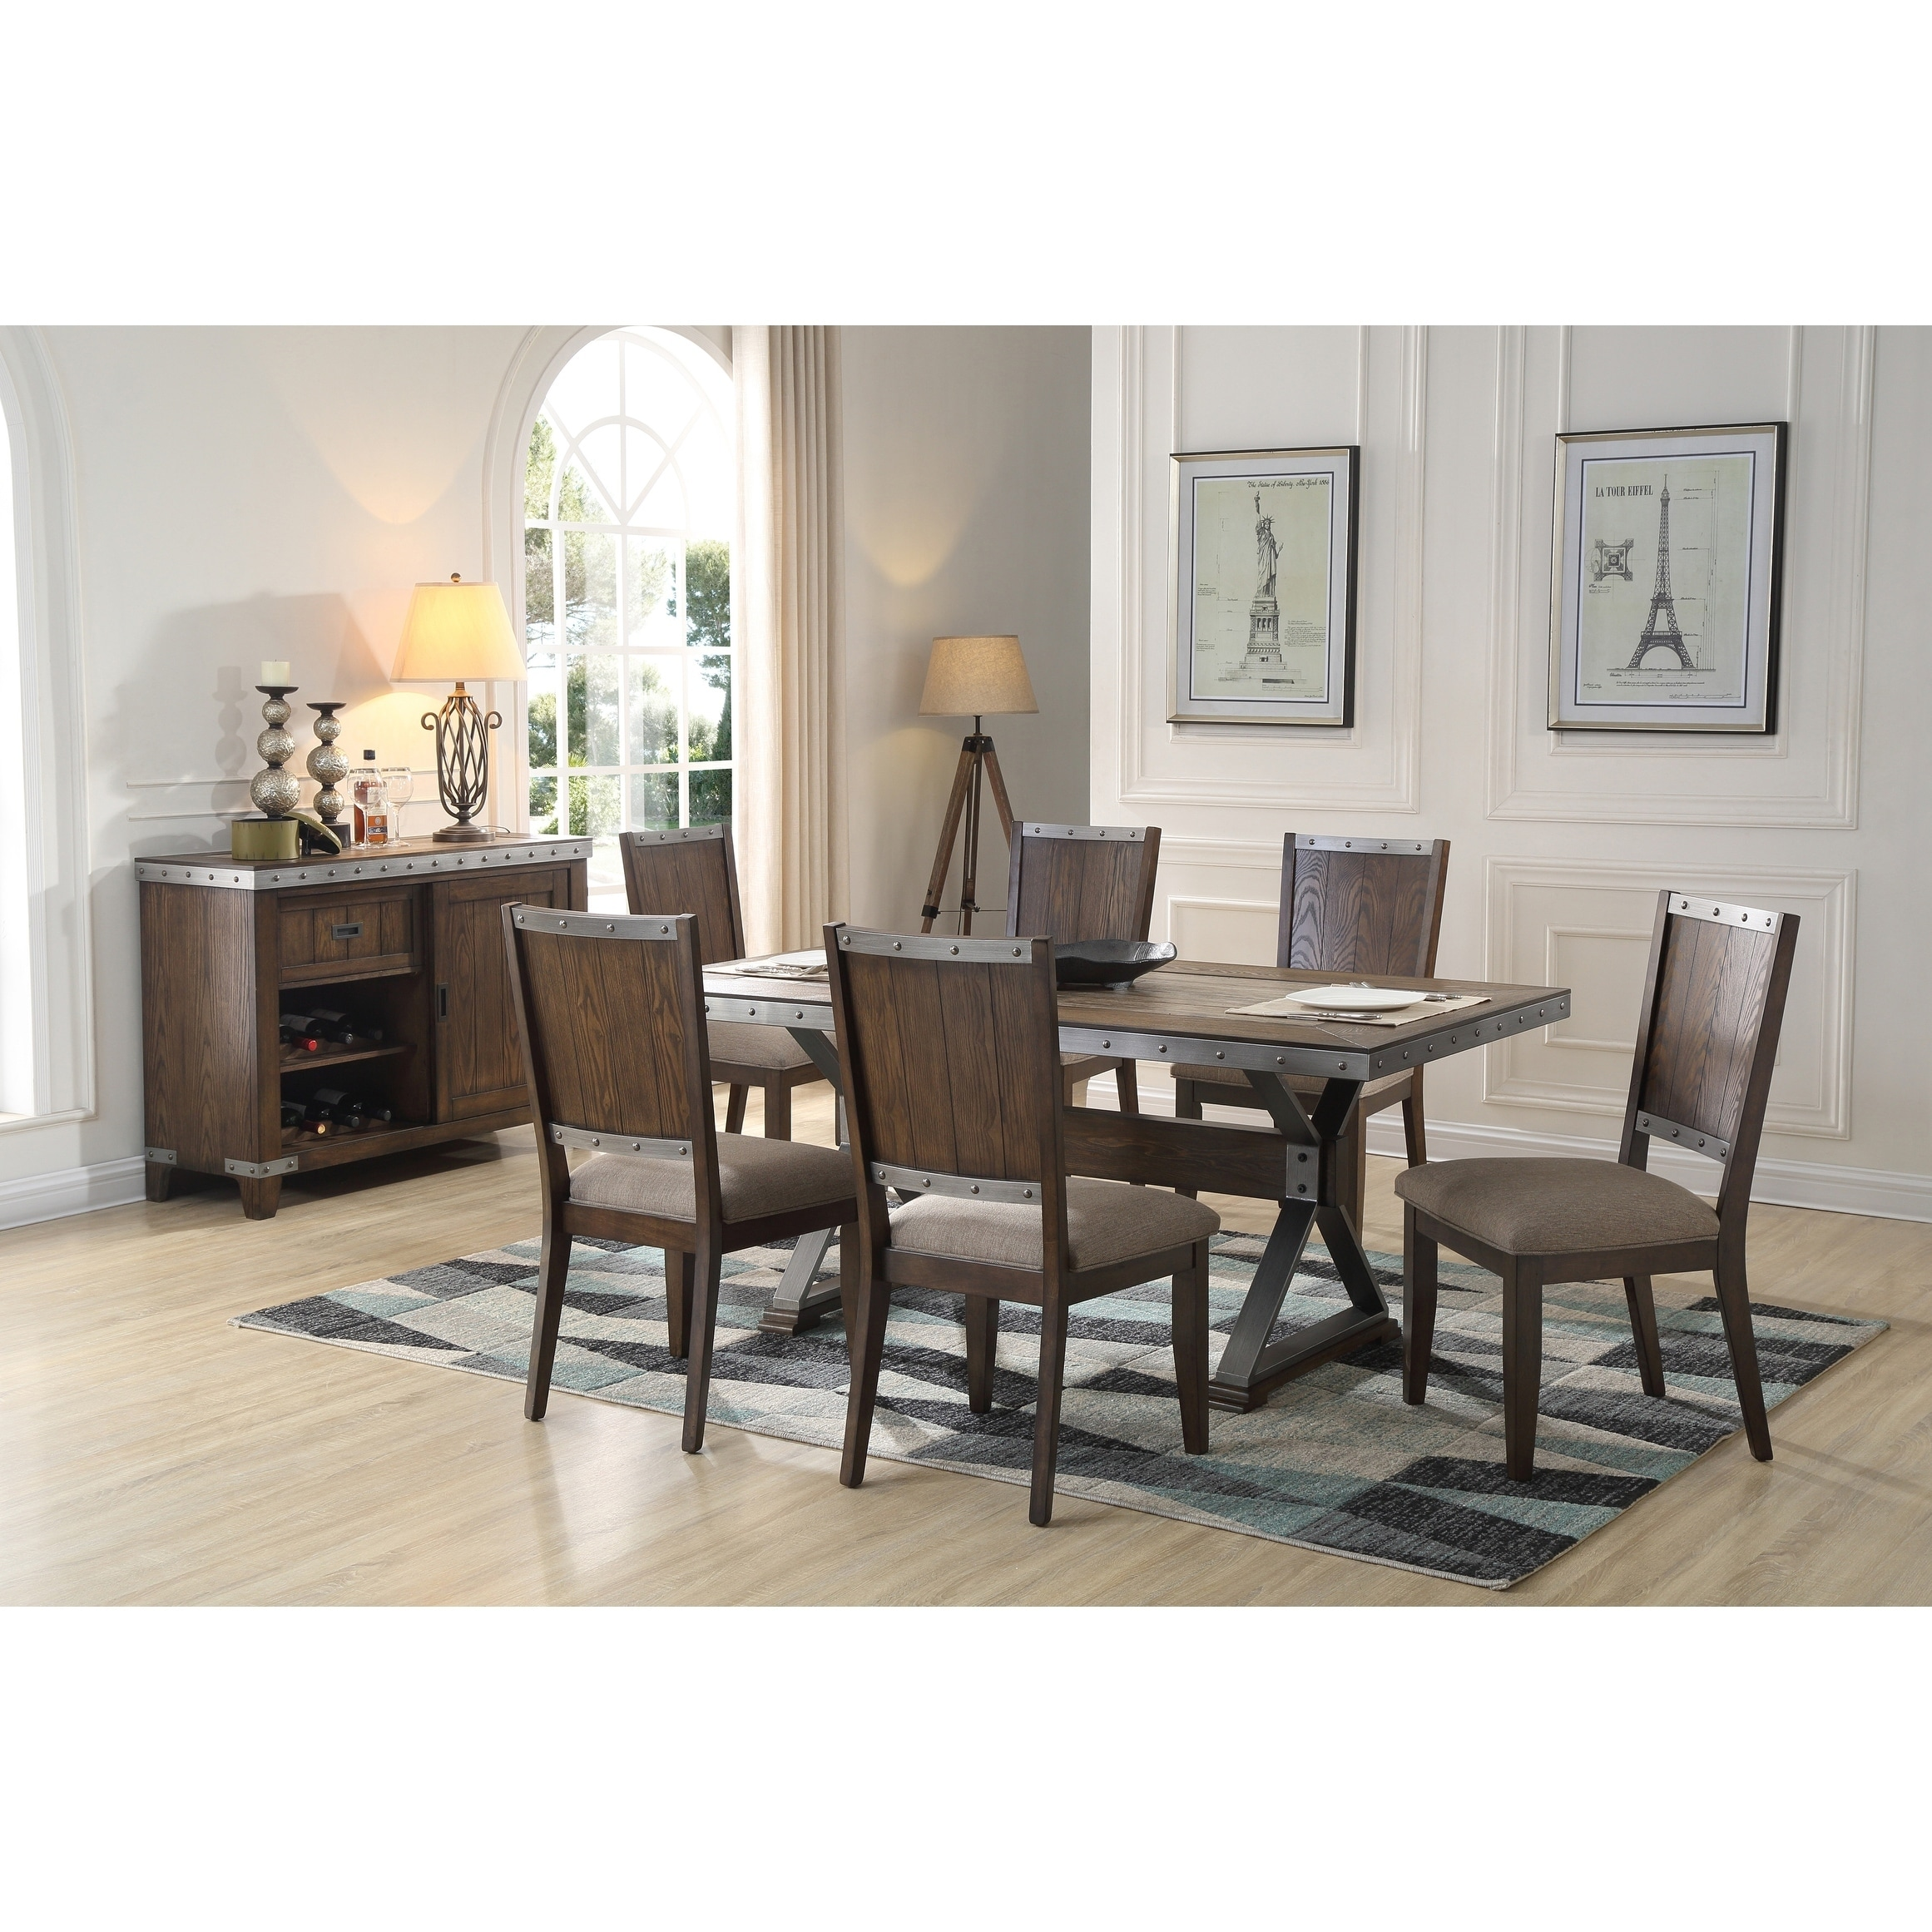 Delightful Best Master Furniture Dark Oak 7 Piece Rectangular Dining Set